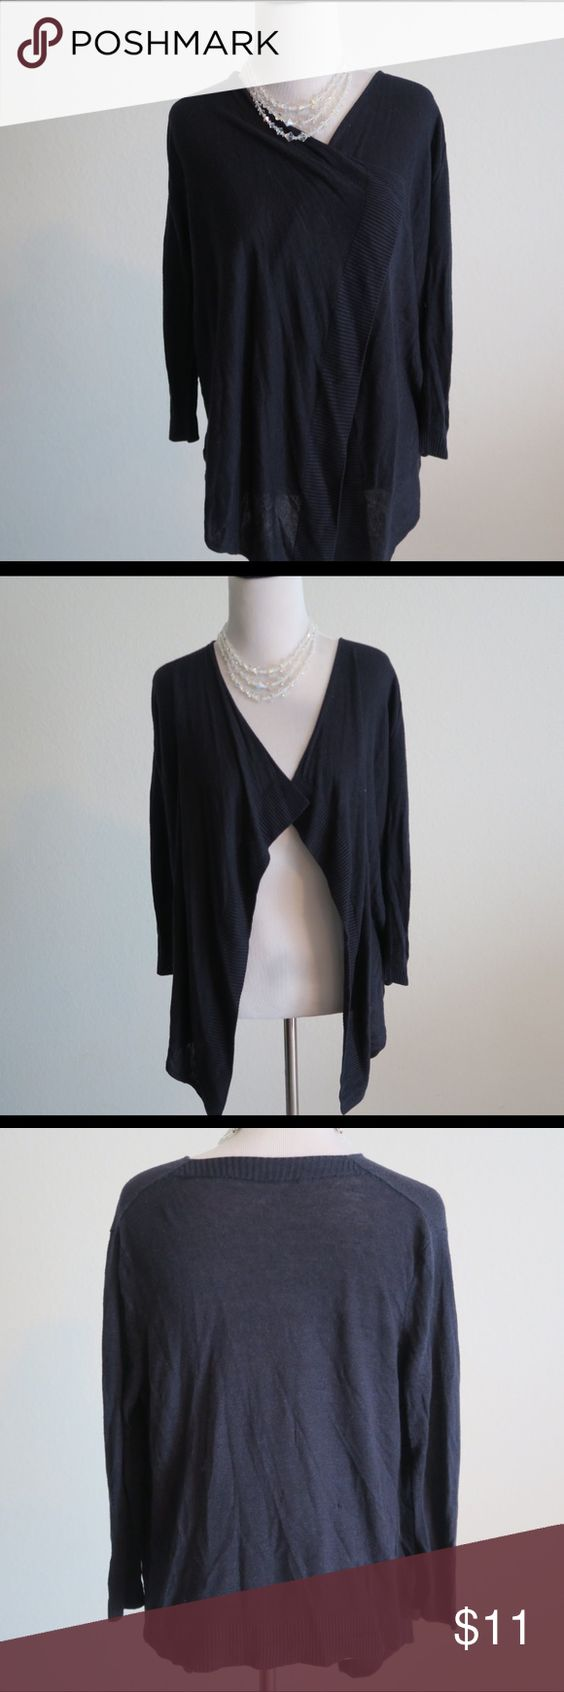 Black Cardigan Sweater Cardigan Size: Small / Medium. Color: Black. Material: 84% Rayon, 16% Silk. Great condition Sweaters Cardigans